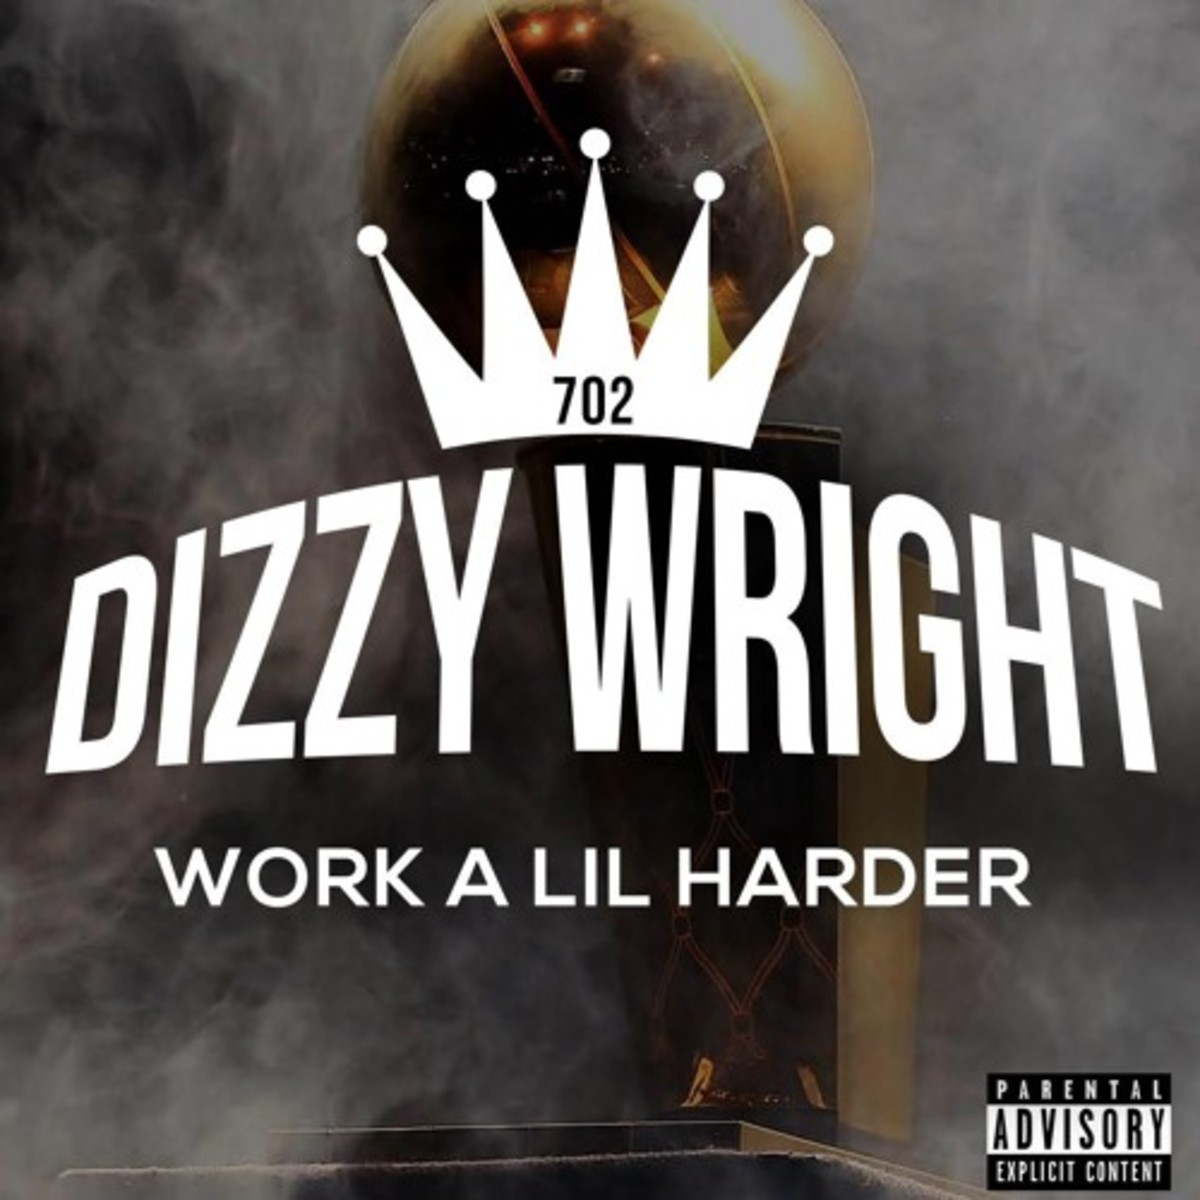 dizzy-wright-work-a-little-harder.jpg